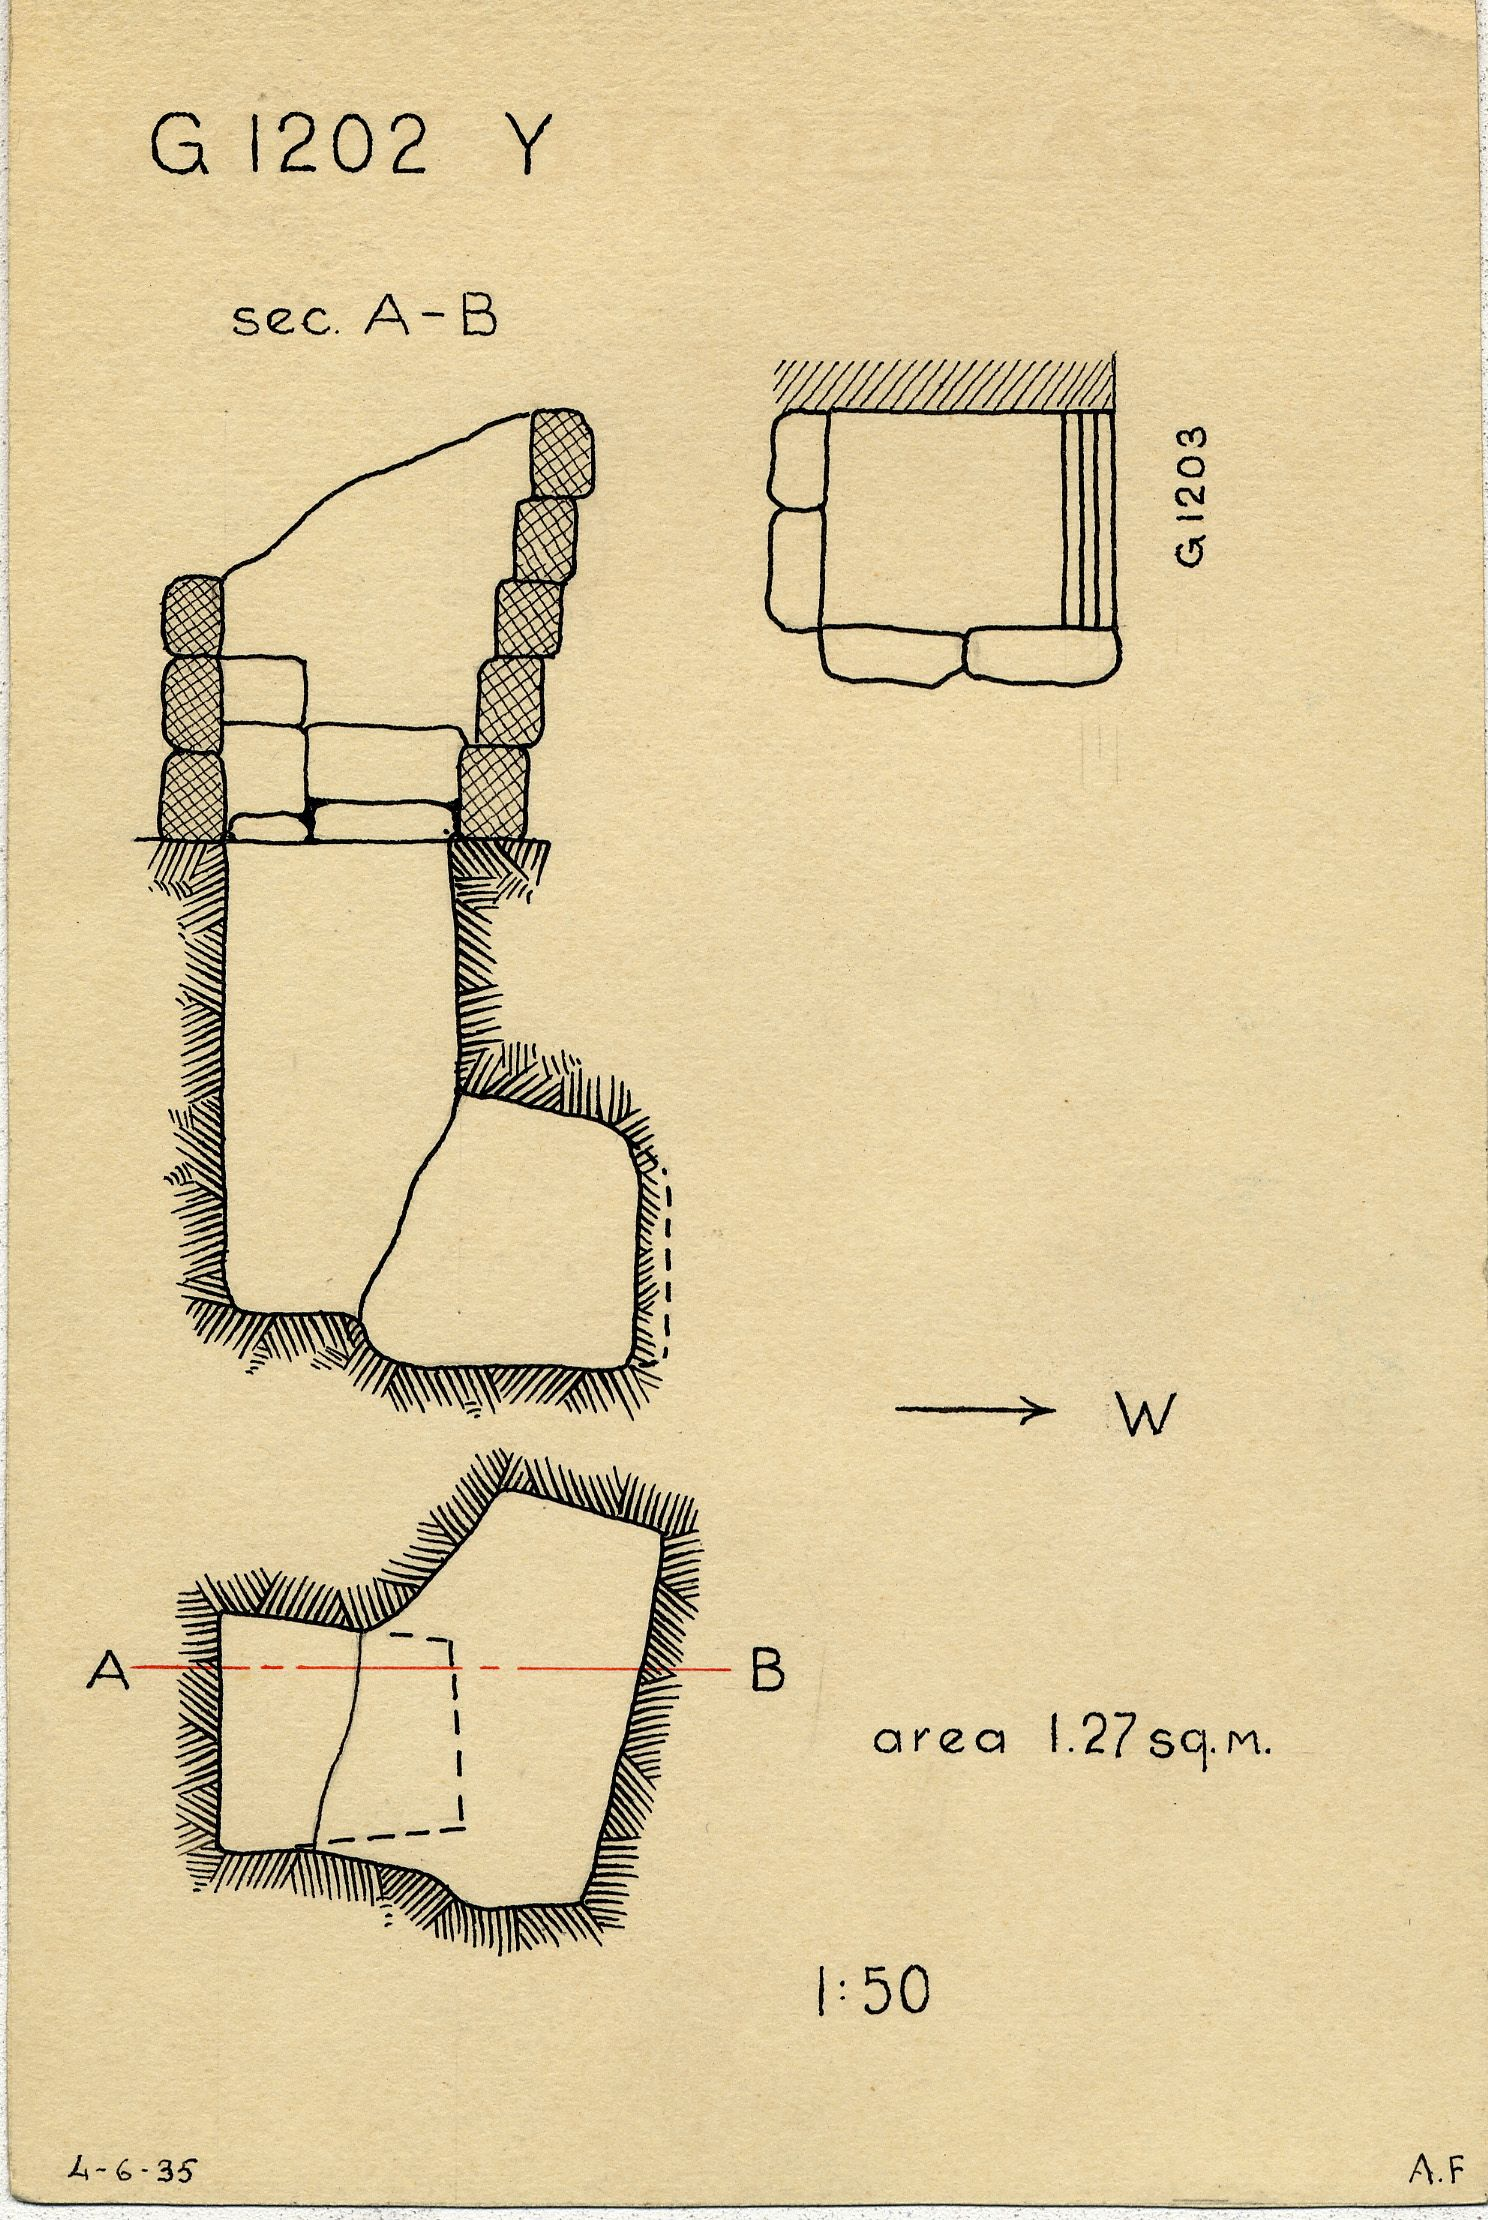 Maps and plans: G 1202, Shaft Y